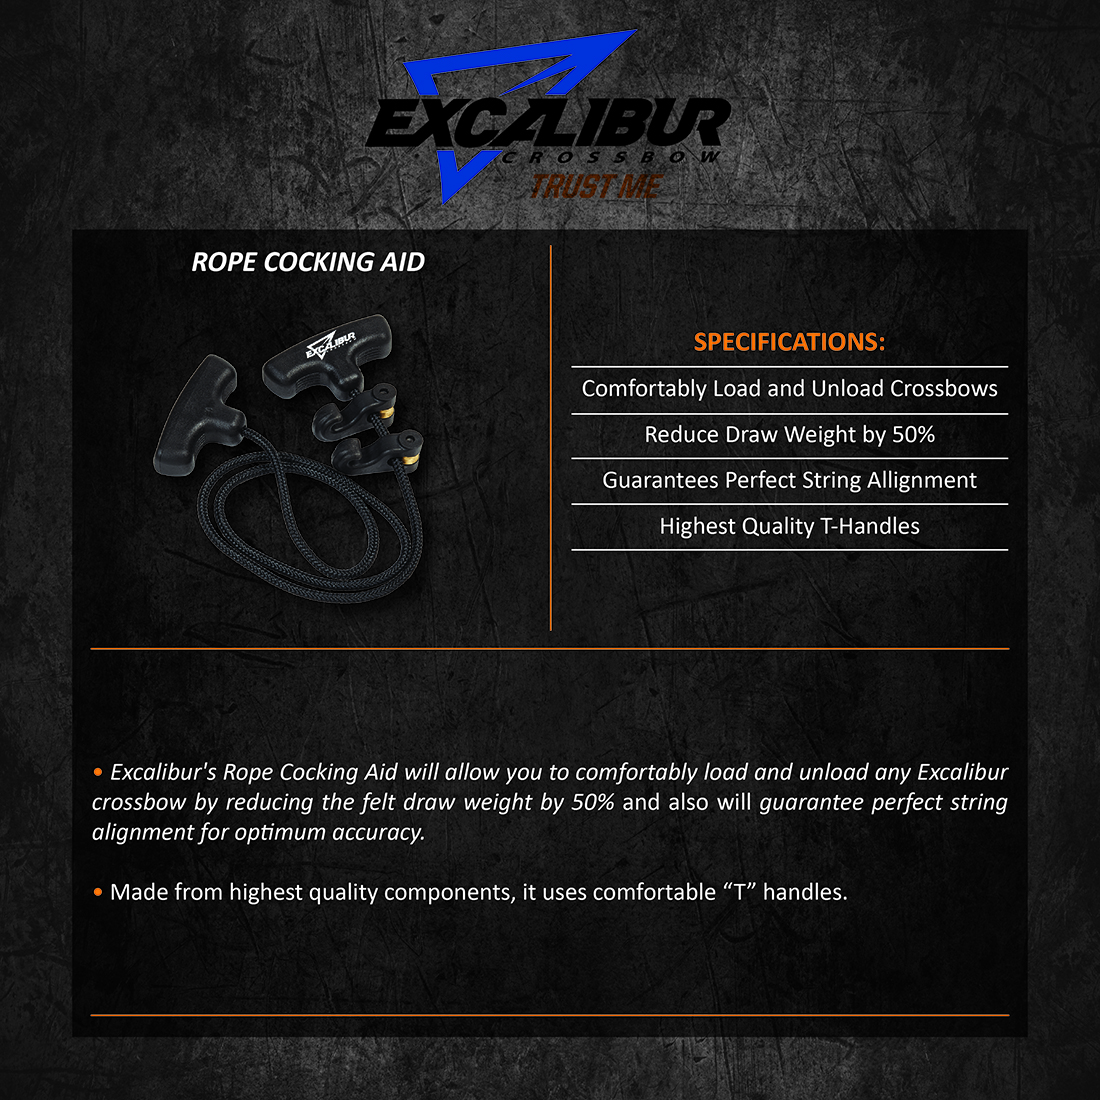 Excalibur_Rope_Cocking_Aid_Product_Description